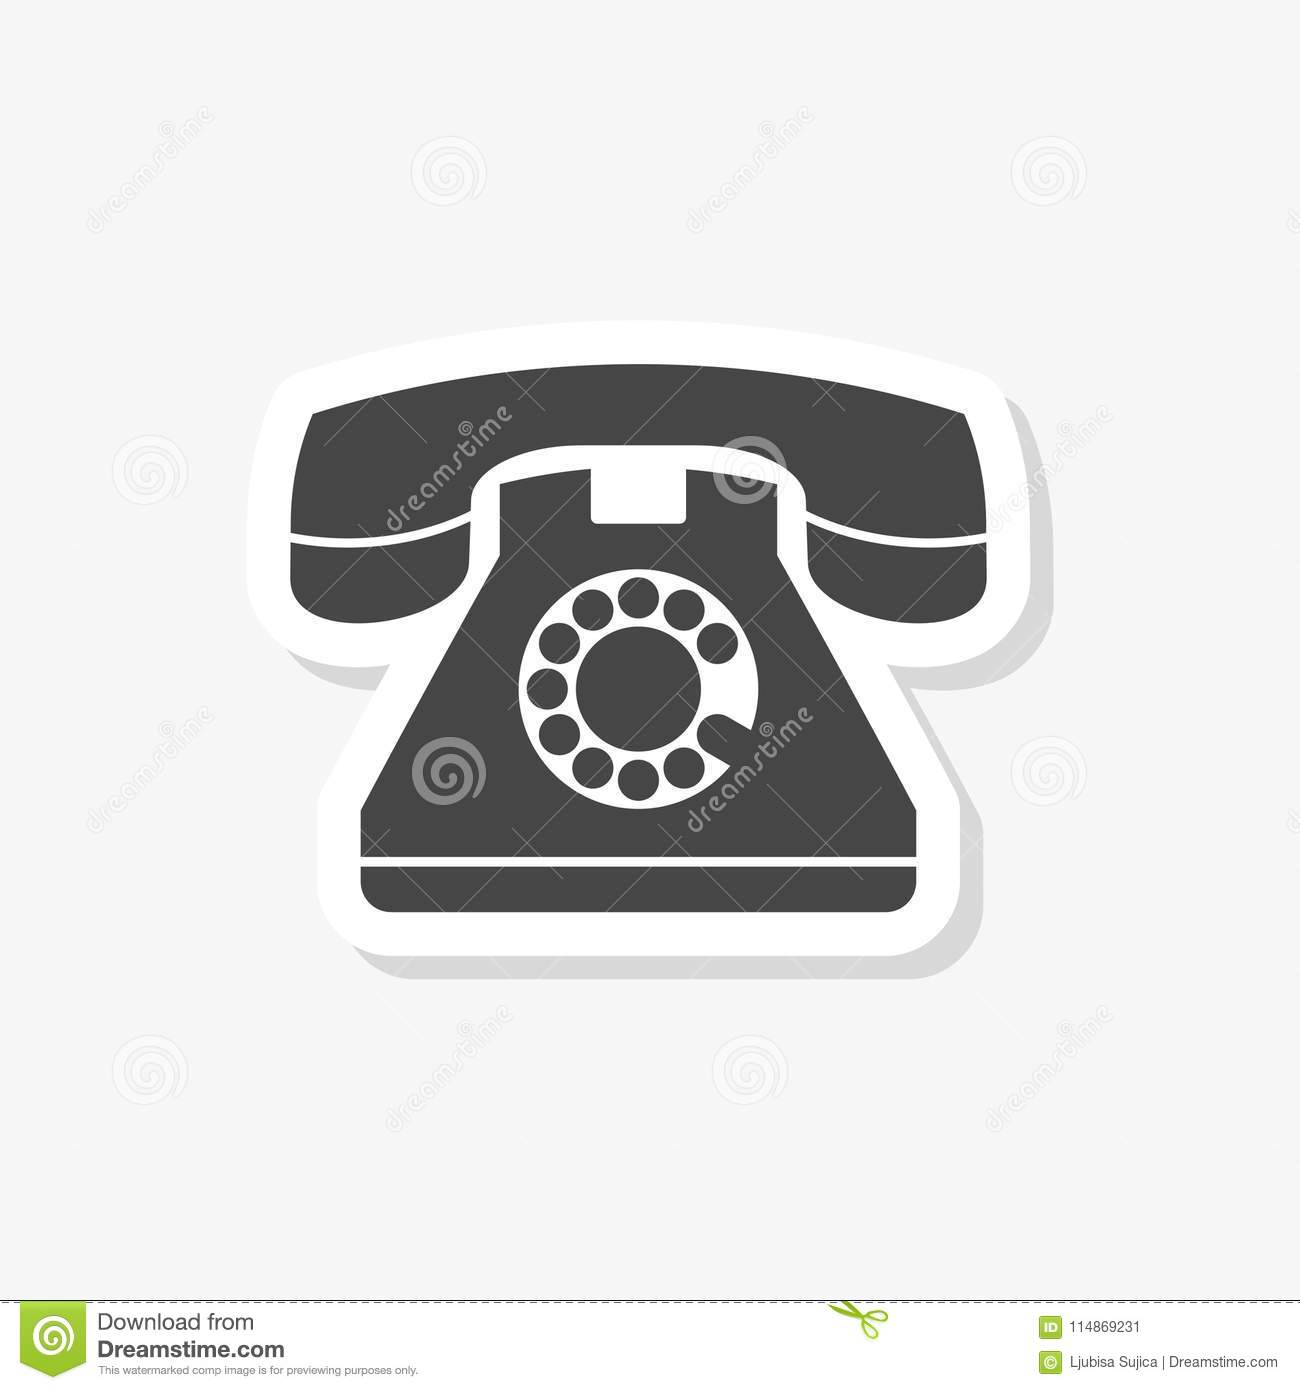 Old phone sticker, Phone vector icon, Old vintage telephone symbol, simple vector icon